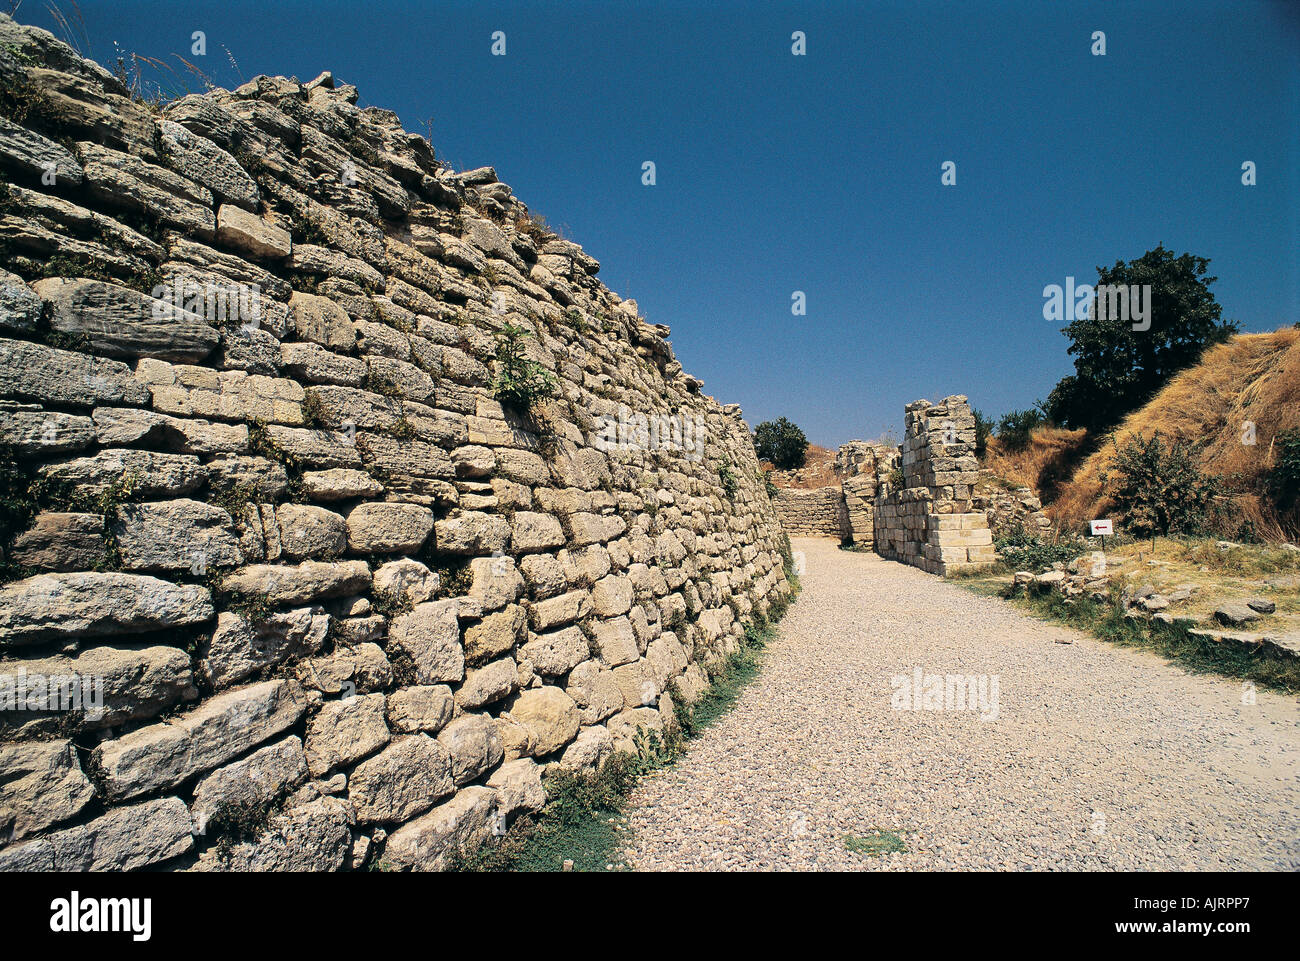 Famous ancient walls of Troy fortress, Çanakkale Turkey. - Stock Image